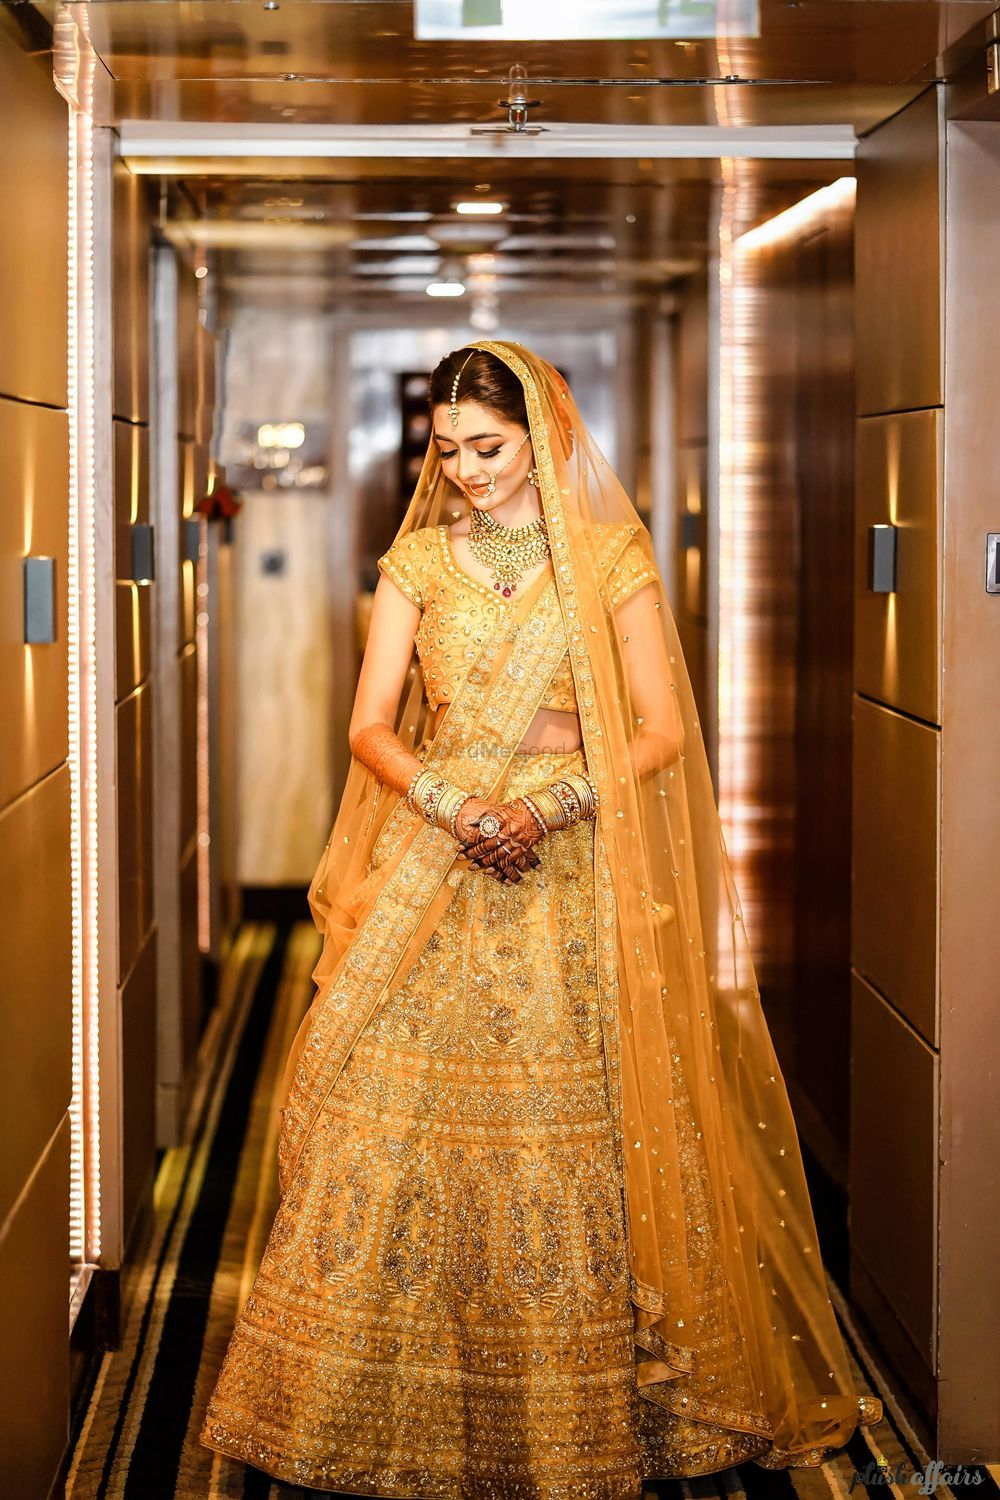 Photo of A bride in a gold lehenga